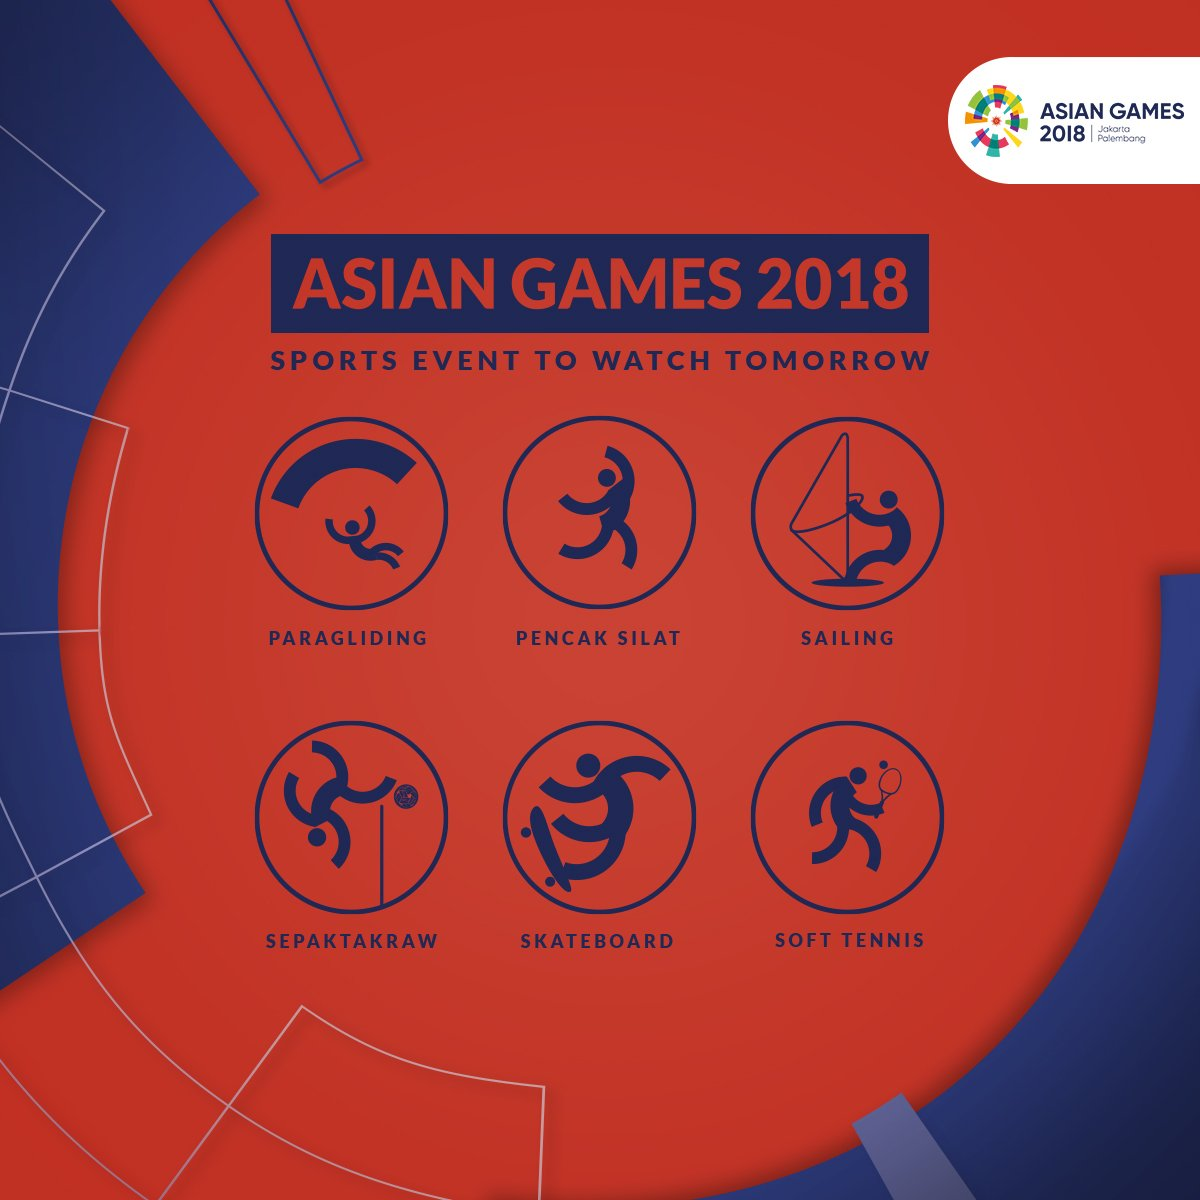 Dls8NpjUYAAVNSo - Asian Games 2018 Events List